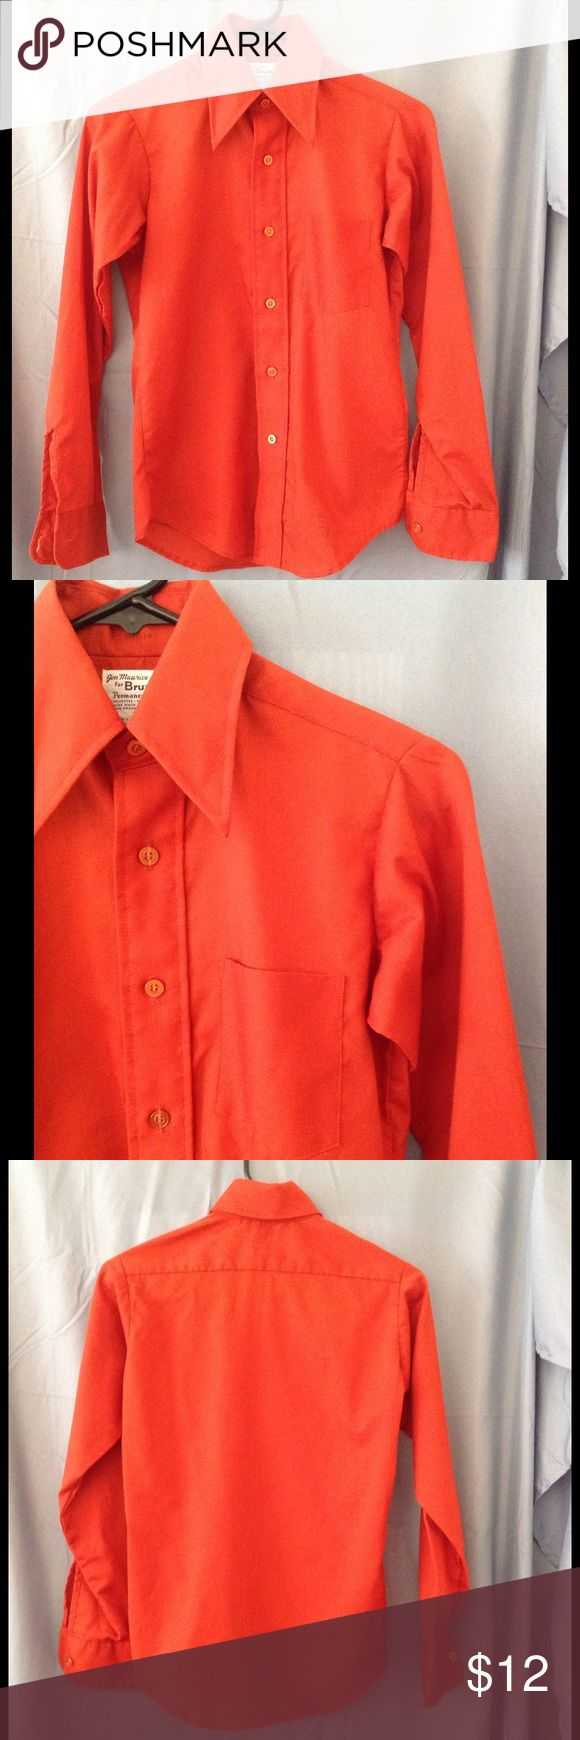 Vntg 70s Boys sz 14 burnt orange dress shirt NWOT Beautiful color shirt.  It is not as bright orange as it turned out in the pics.  Never been worn, but i did wash it.  A fitted style shirt.  Size 13 neck.  Jon Maurice for Bruxton brand.  Made in the USA. Vintage Shirts & Tops Button Down Shirts